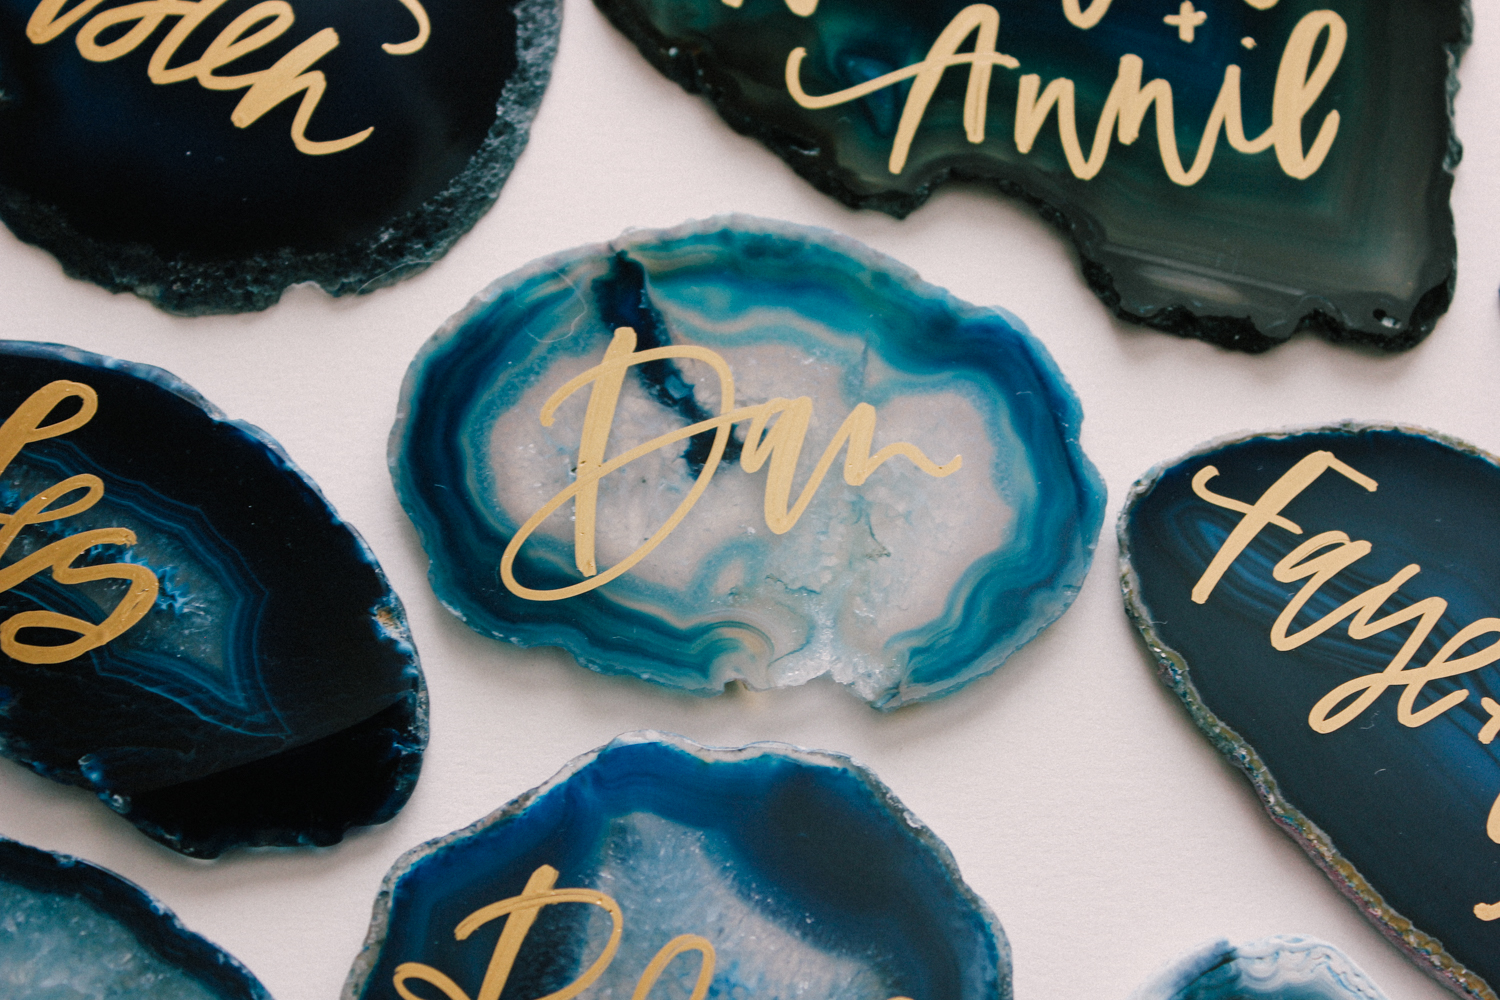 Deep ocean blue agate place cards hand lettered with each guest's name | A Fabulous Fete